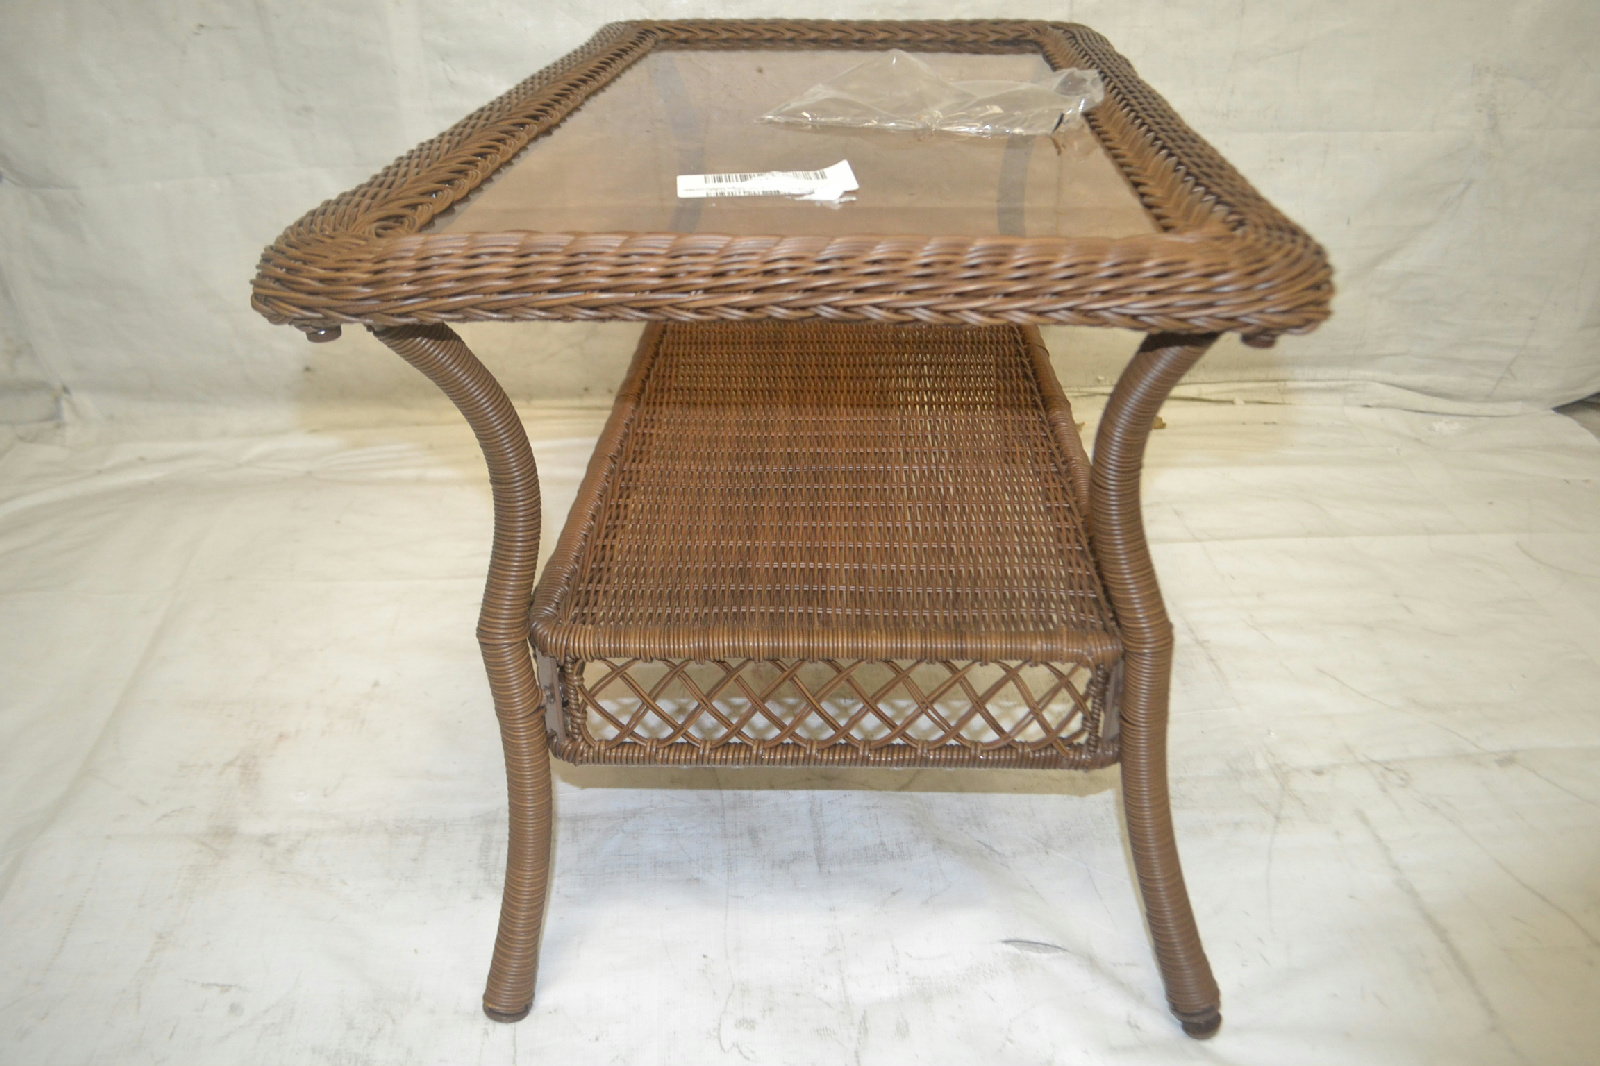 spring haven brown all weather wicker patio sofa clic clac bed with storage coffee table